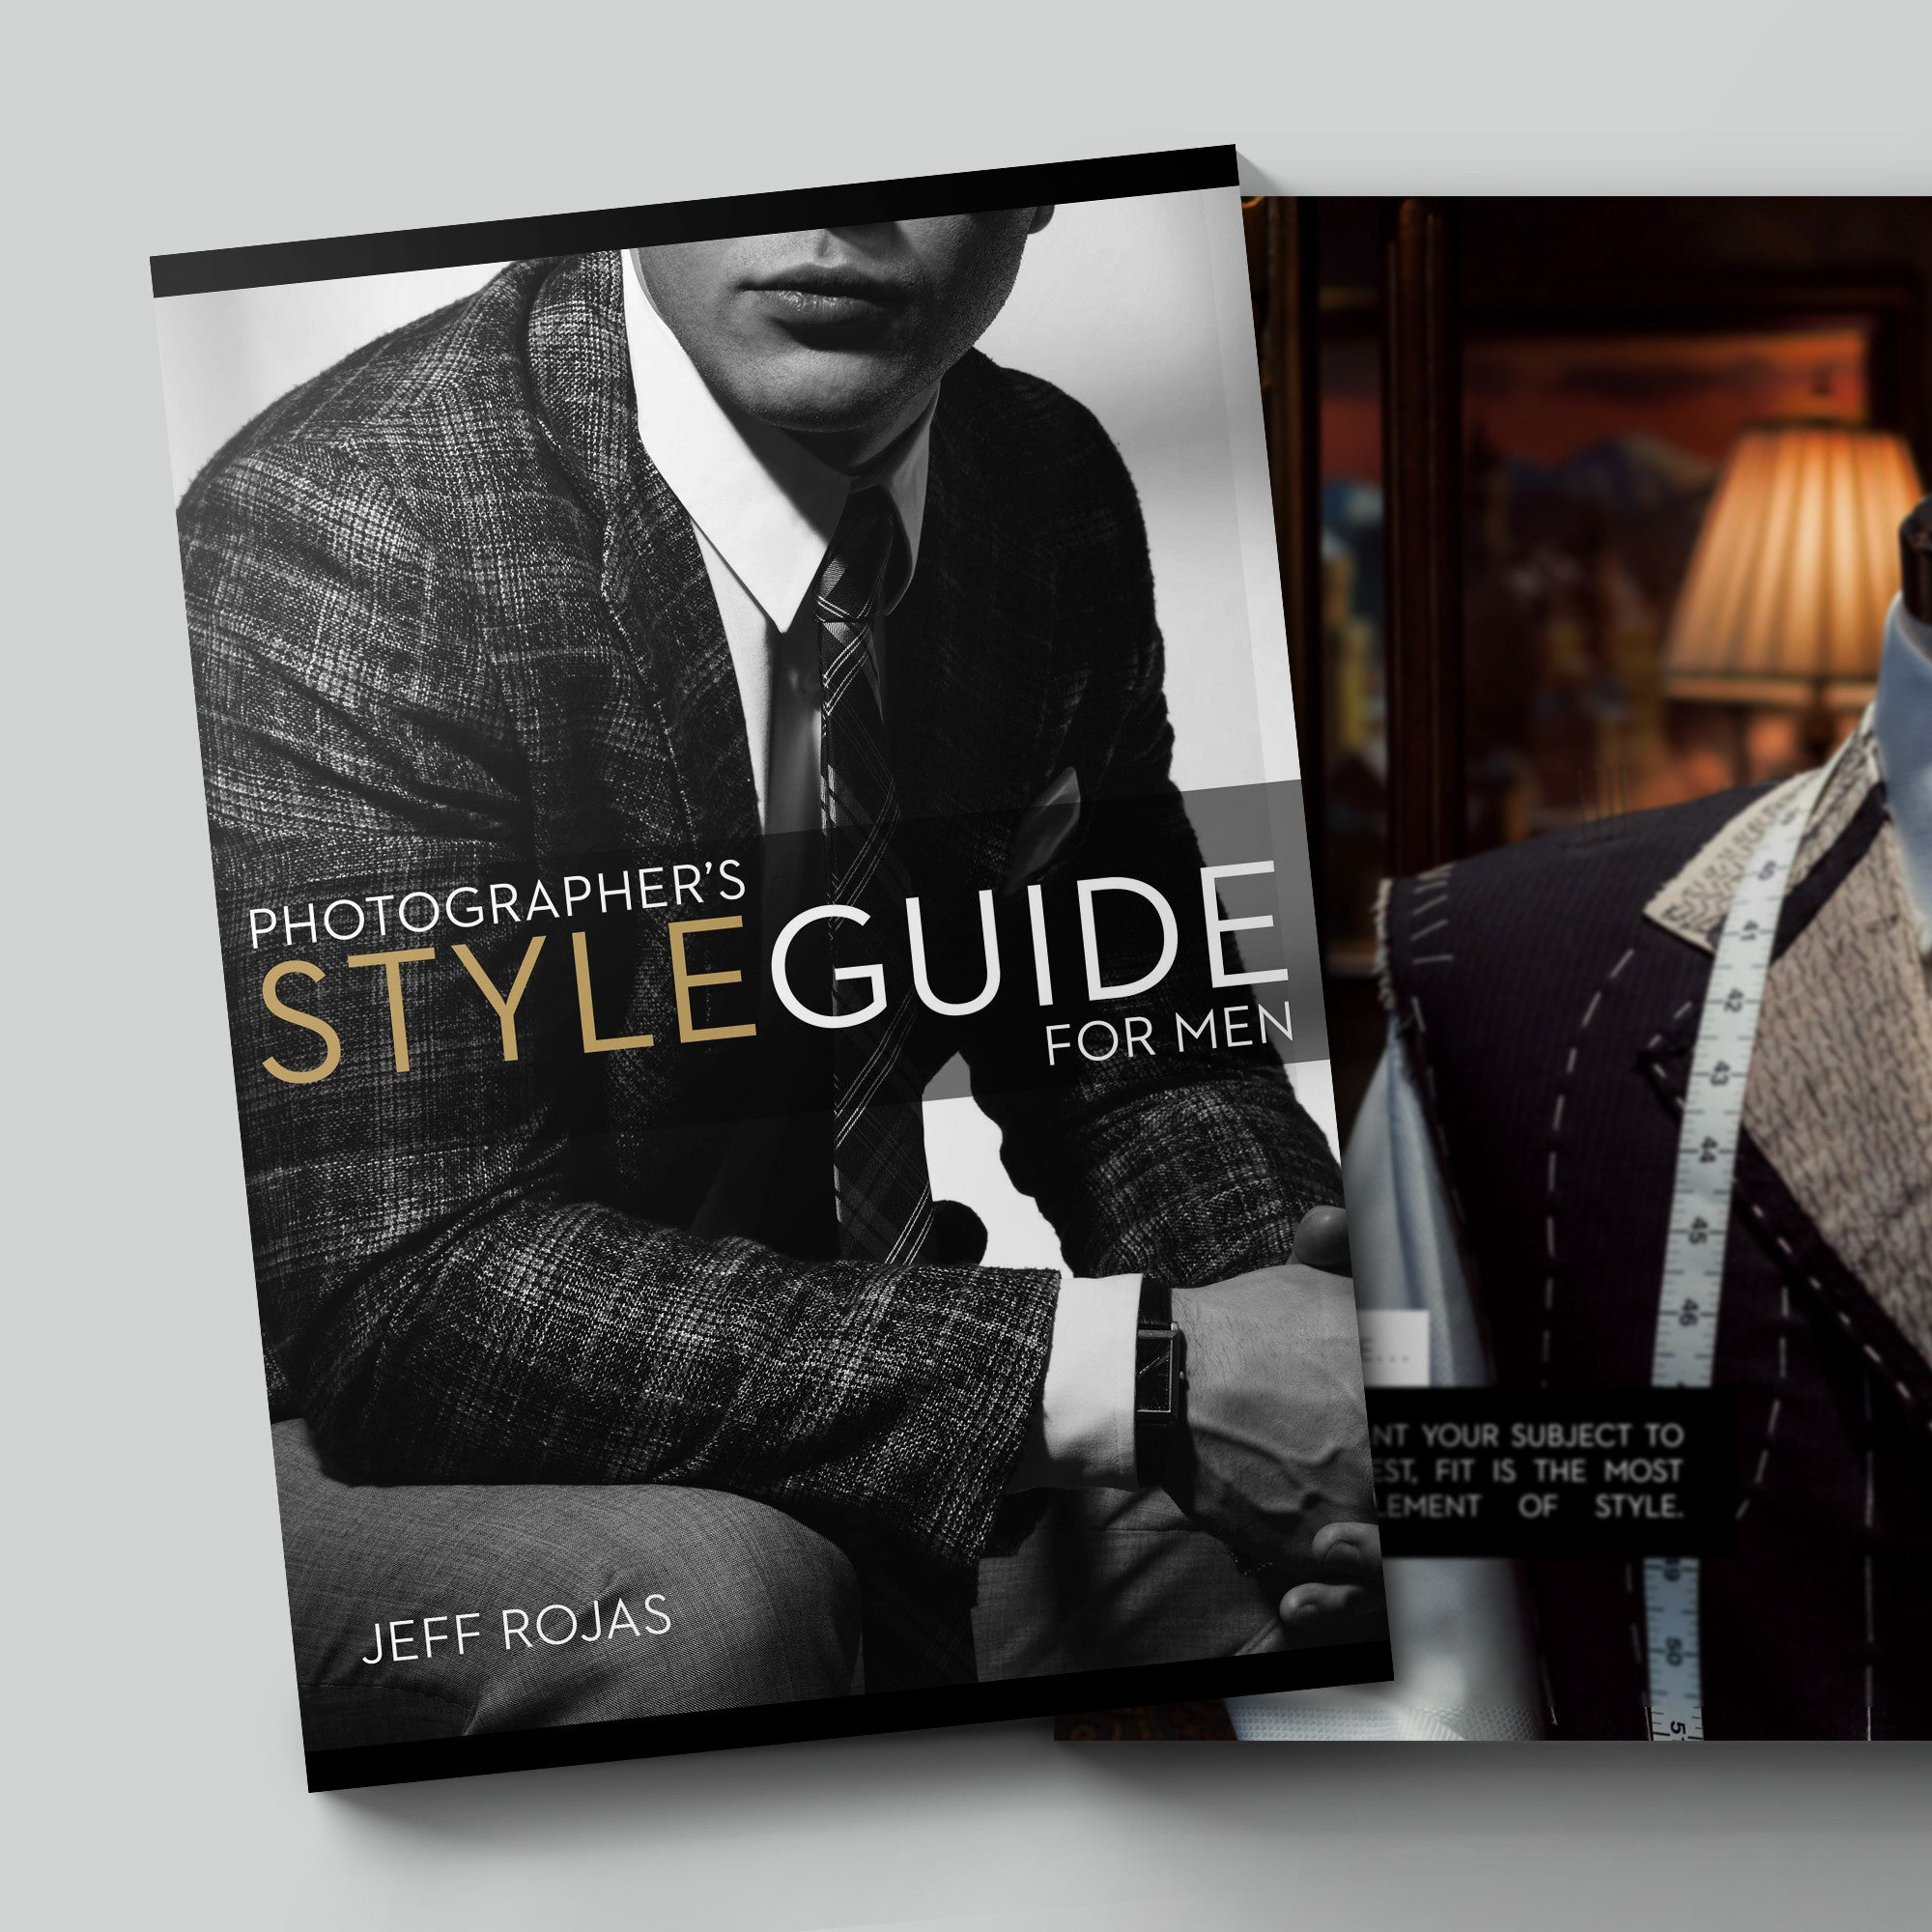 Photographer's Styling Guide For Men